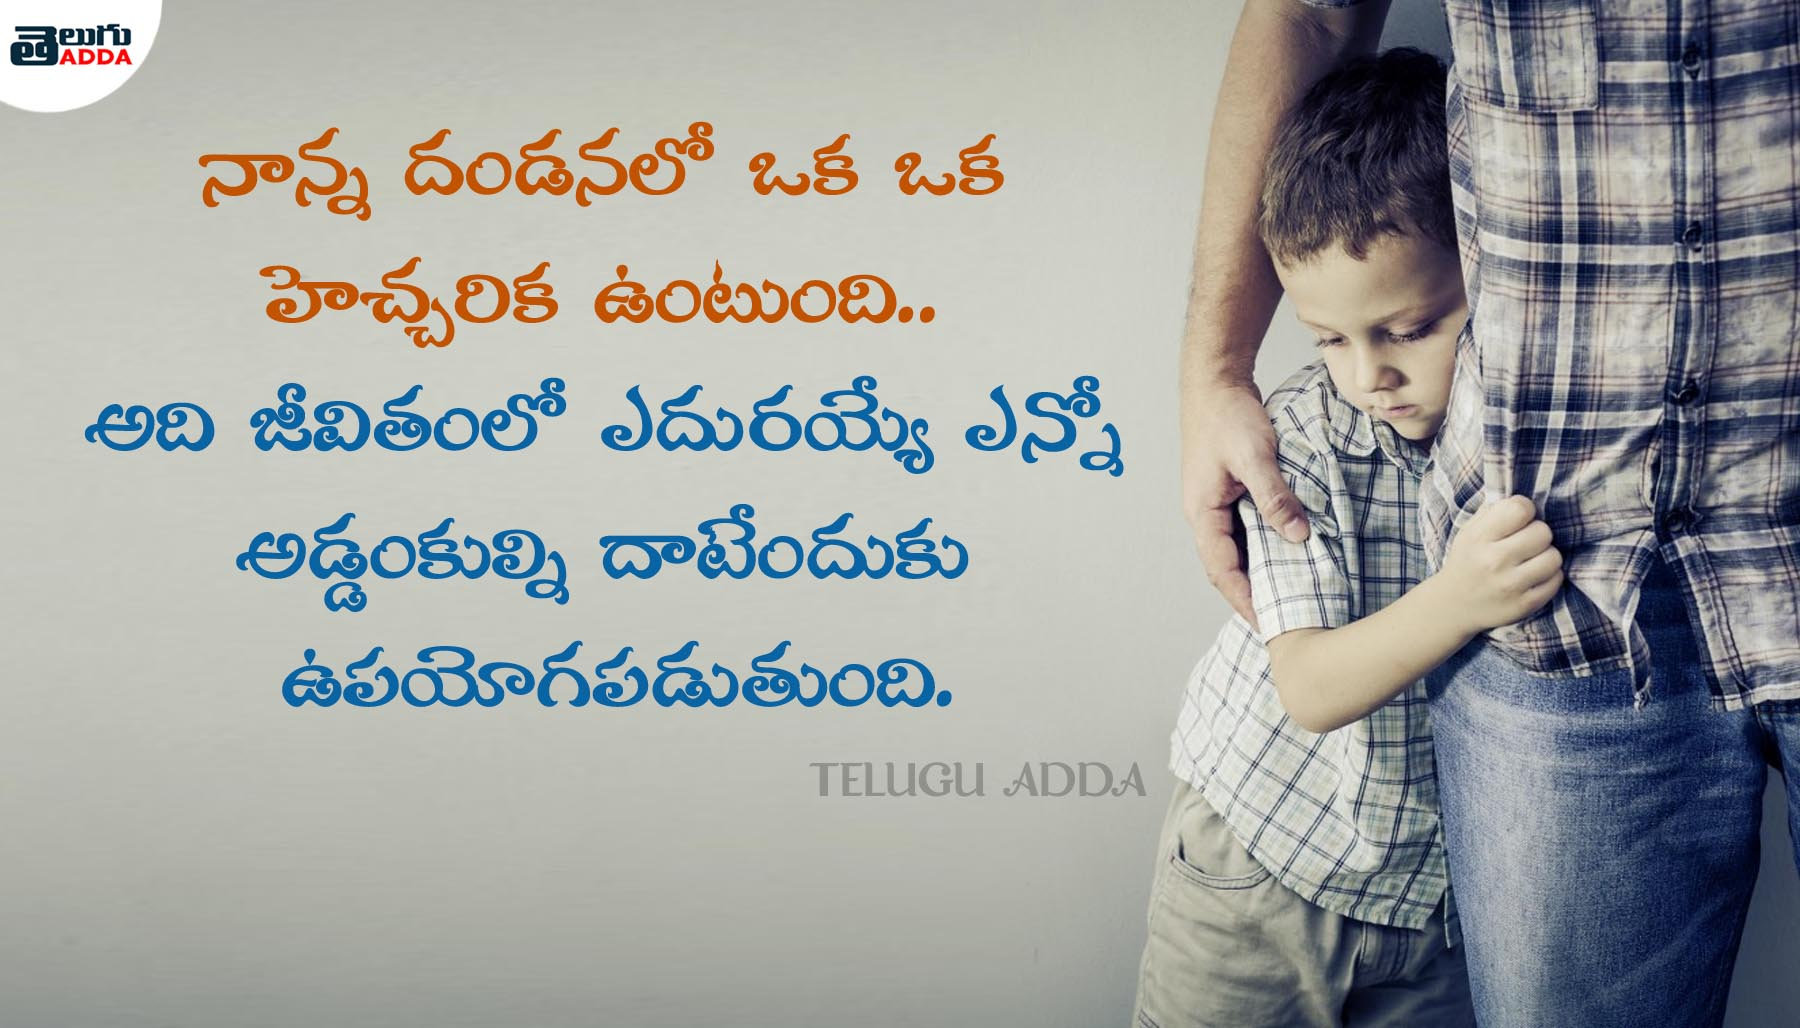 fathers day images in telugu 2020